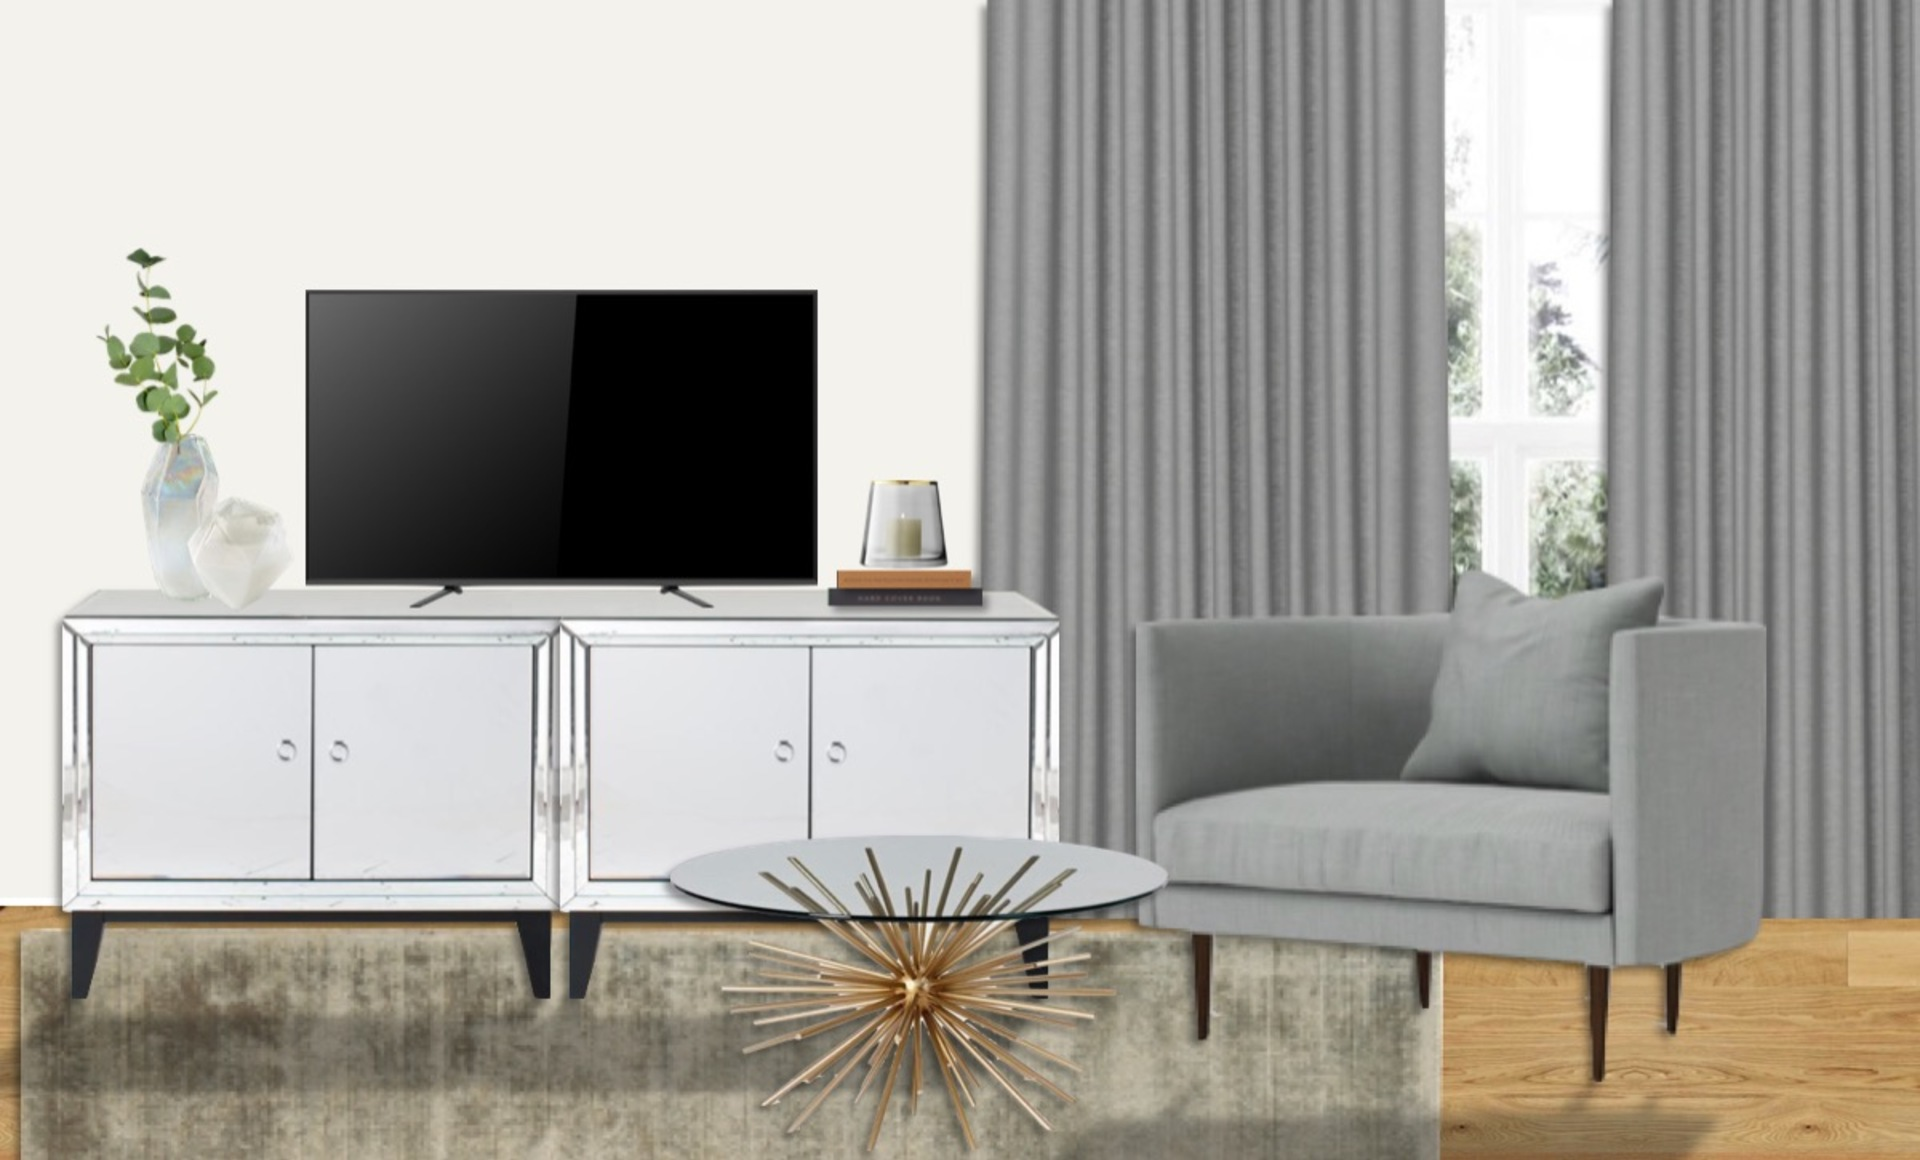 Mirrored TV unit adds glamour and grey furniture gives a timeless look to this living room with brass accents